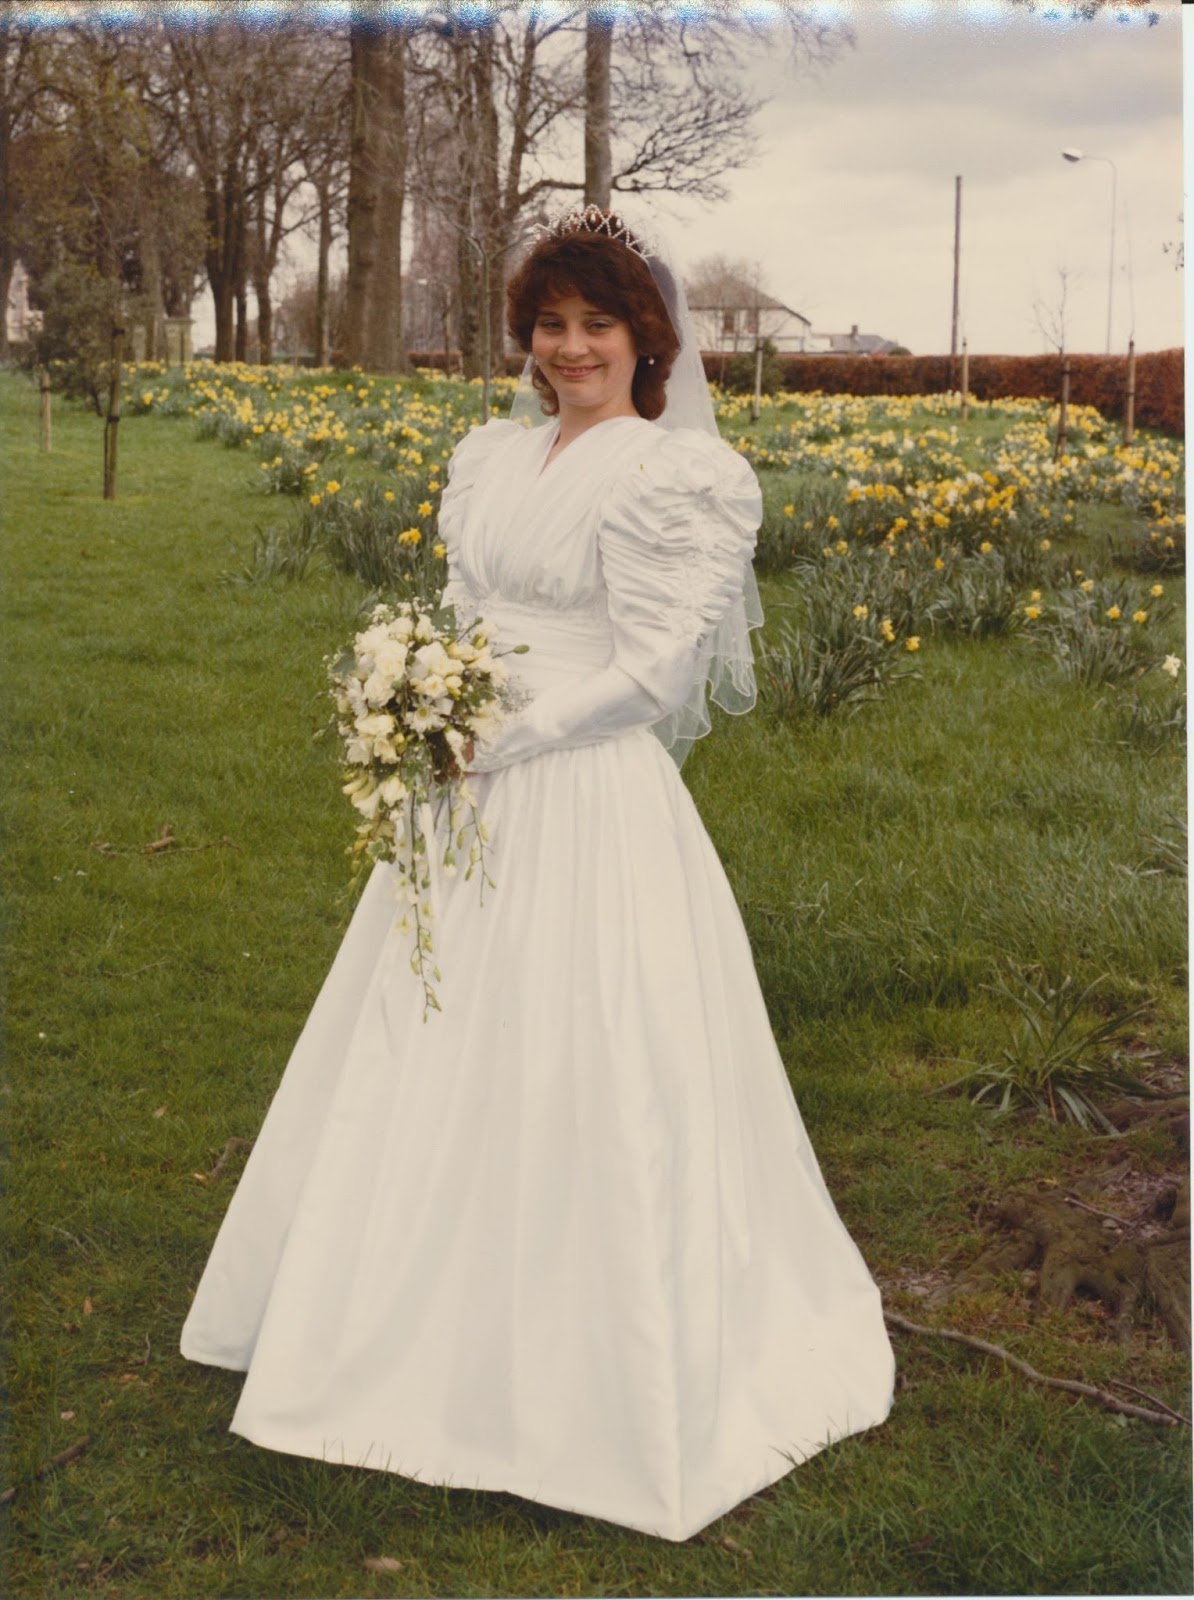 1987 wedding dress by Pronovias worn by Is This Mutton's Gail Hanlon